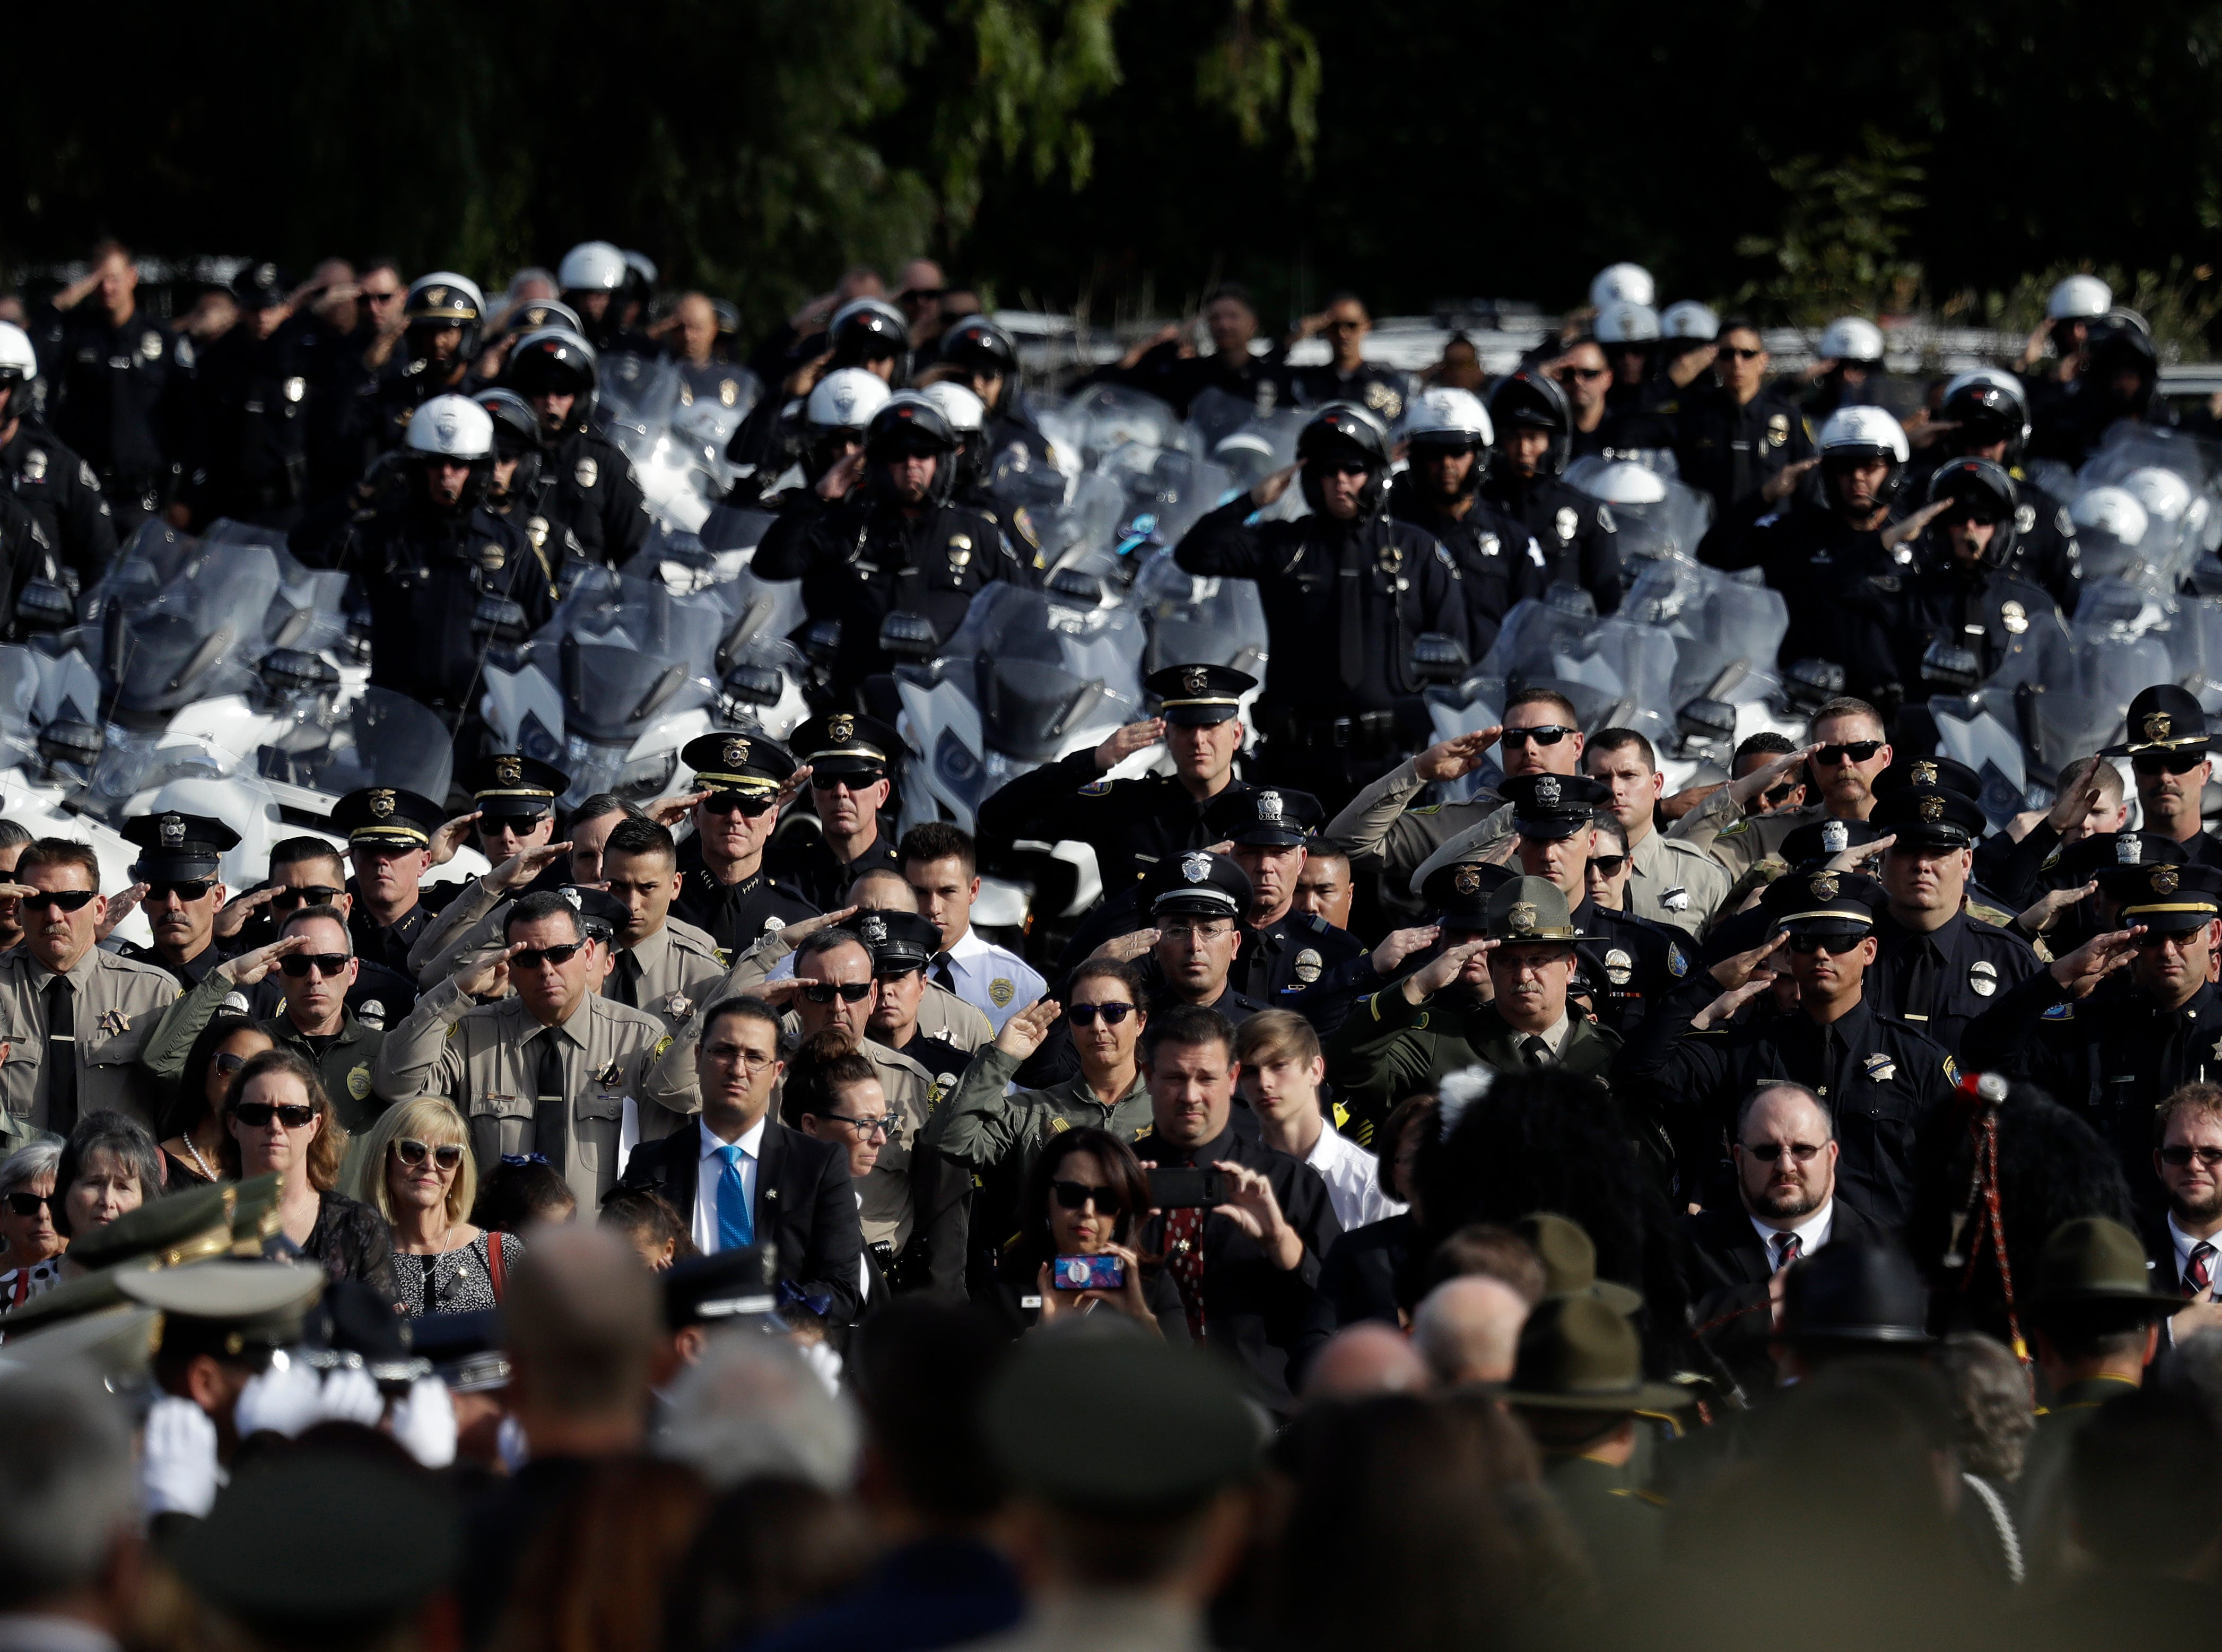 Law enforcement personnel salute as the casket of Ventura County Sheriff's Office Sgt. Ron Helus is carried out after his memorial service at Calvary Community Church in Westlake Village on Thursday.